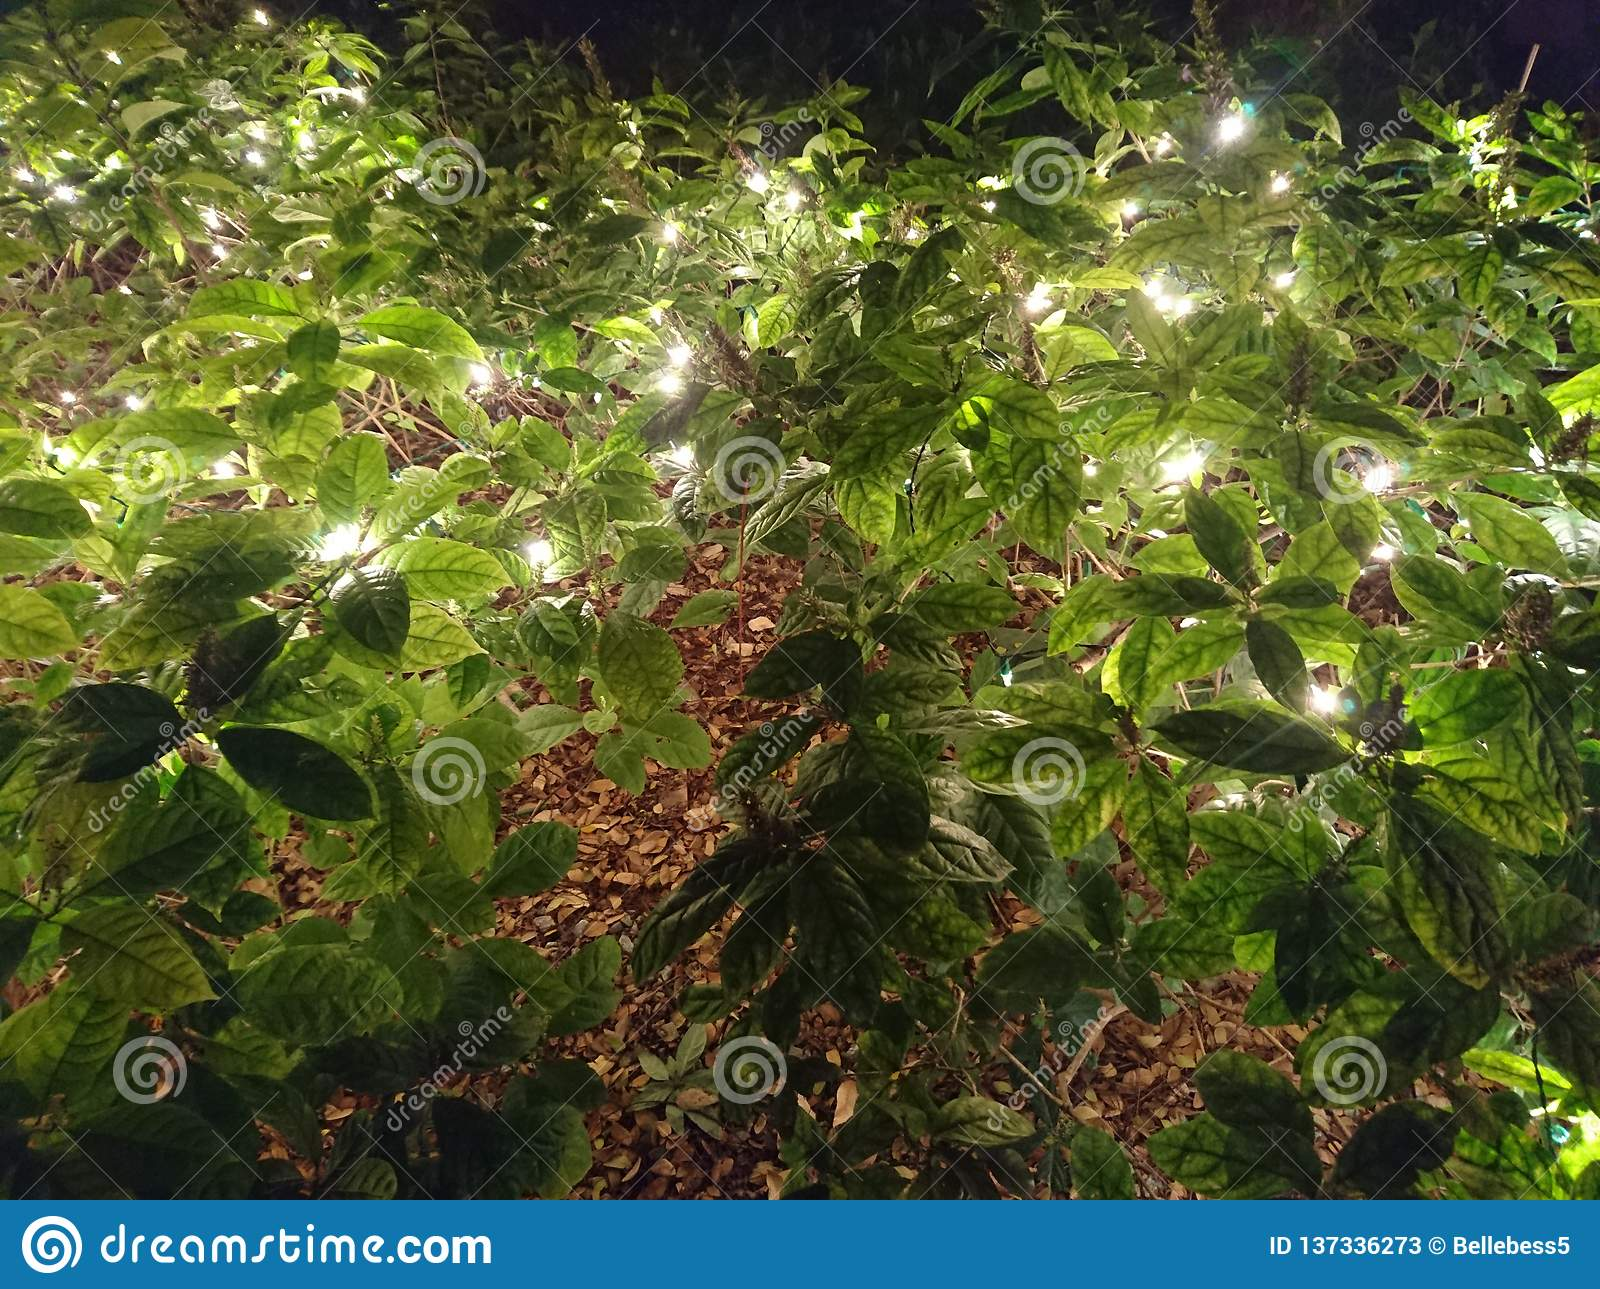 Backyard Patio Light In Shrubs To Light A Street Stock Image